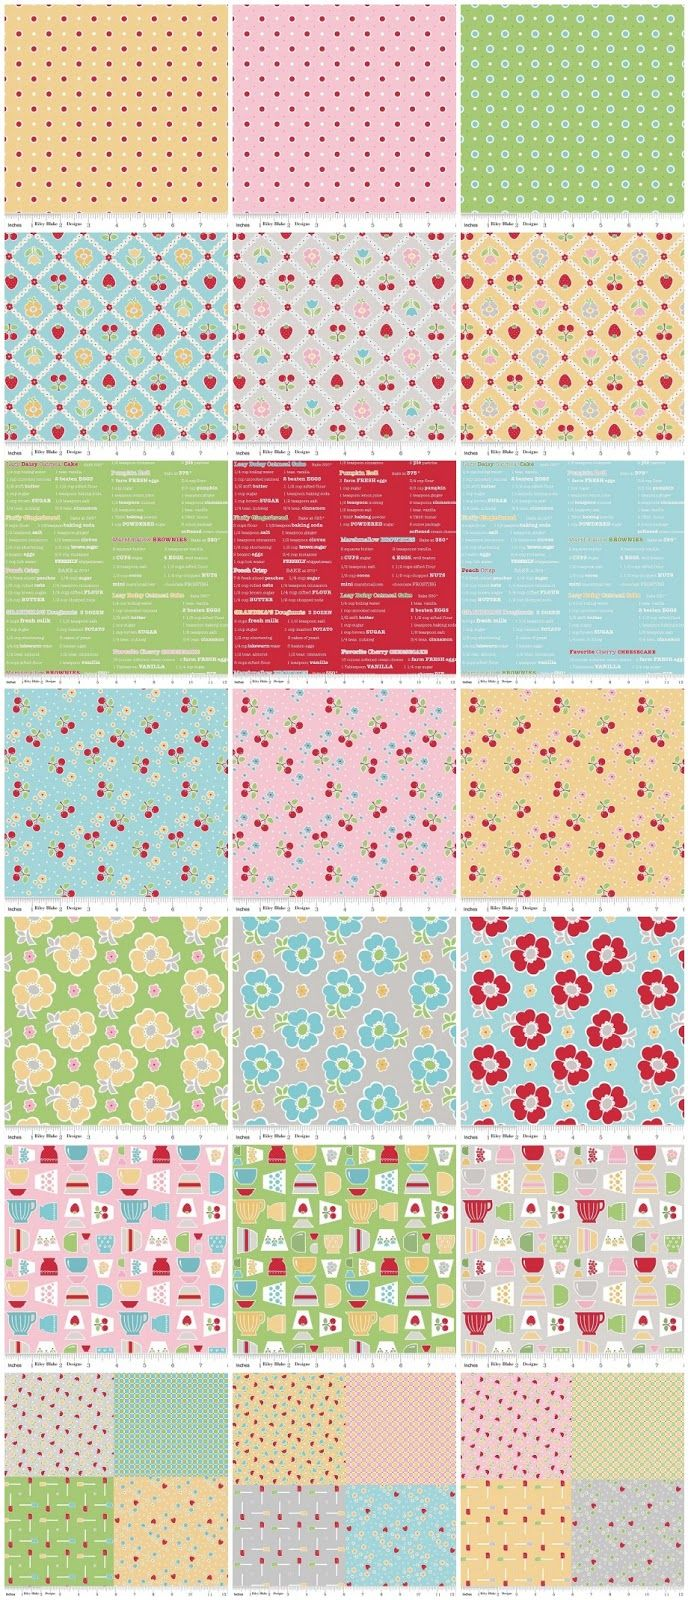 39 best Bake Sale Fabric... images on Pinterest | Quilt block ... : must have quilting supplies - Adamdwight.com